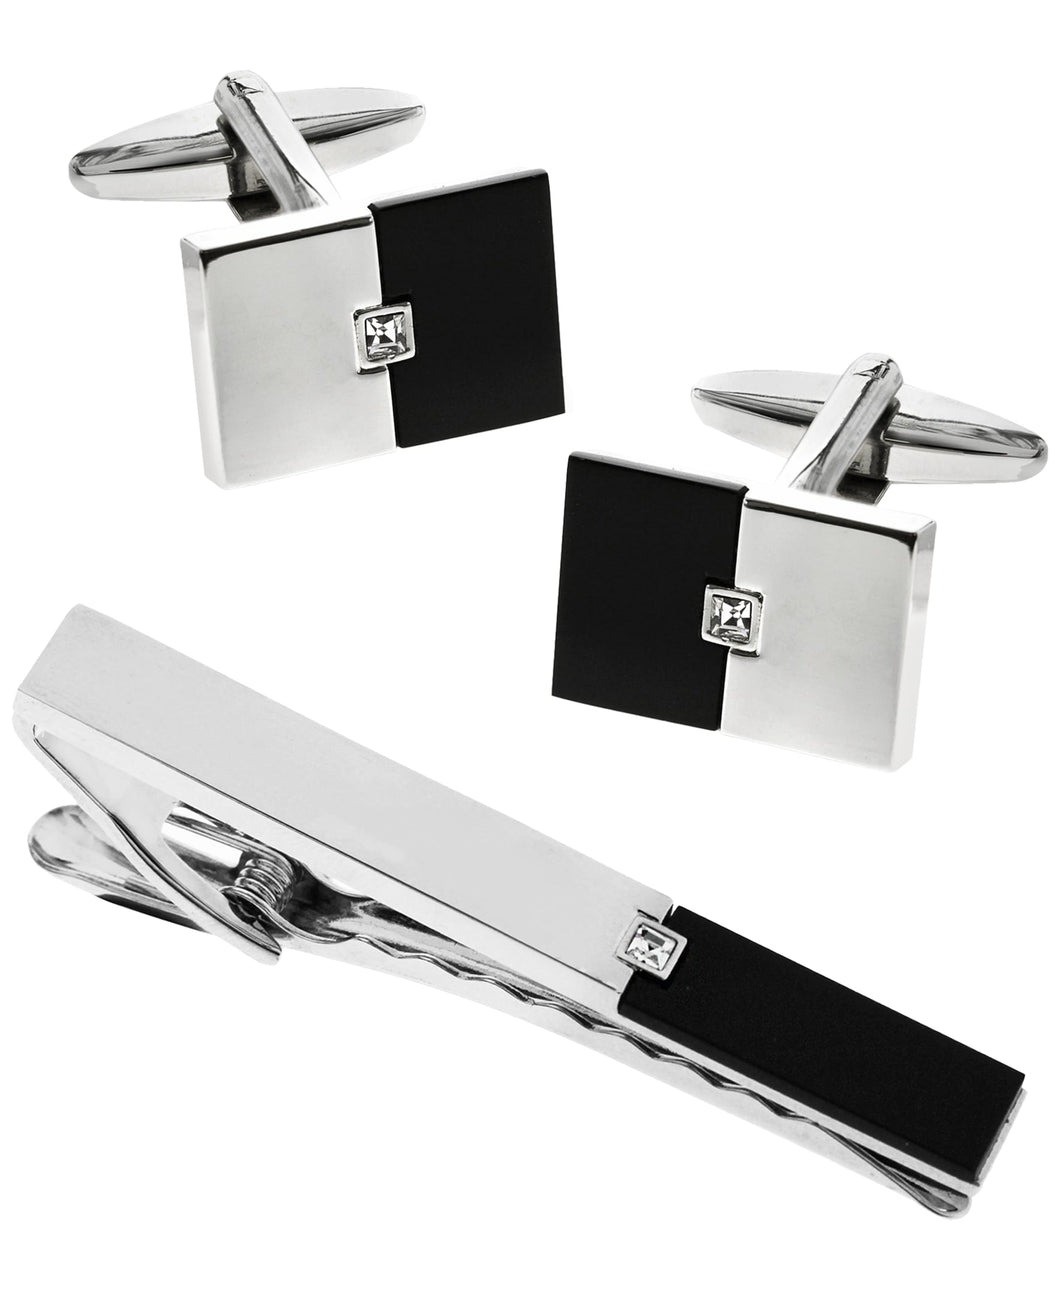 Sutton Stainless Steel and Black Cufflinks and Tie Clip Set